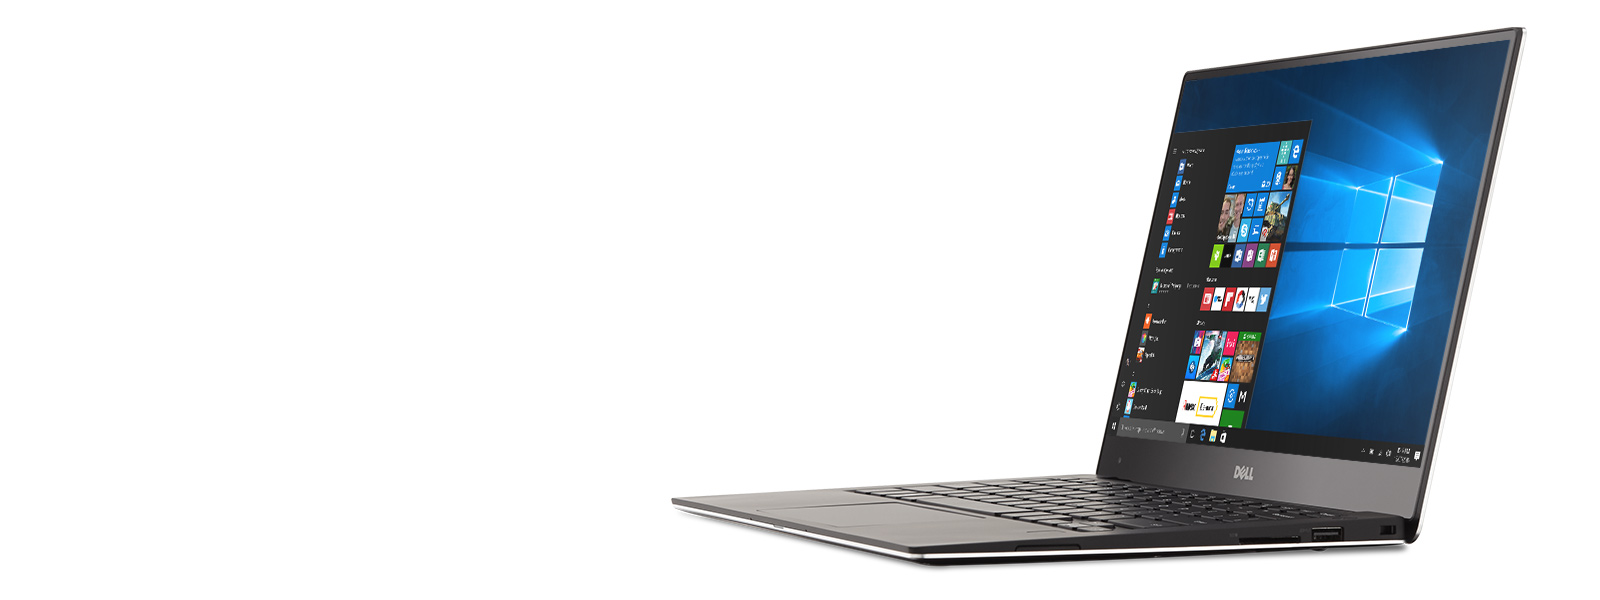 Dell XPS 13 with Windows 10 start screen